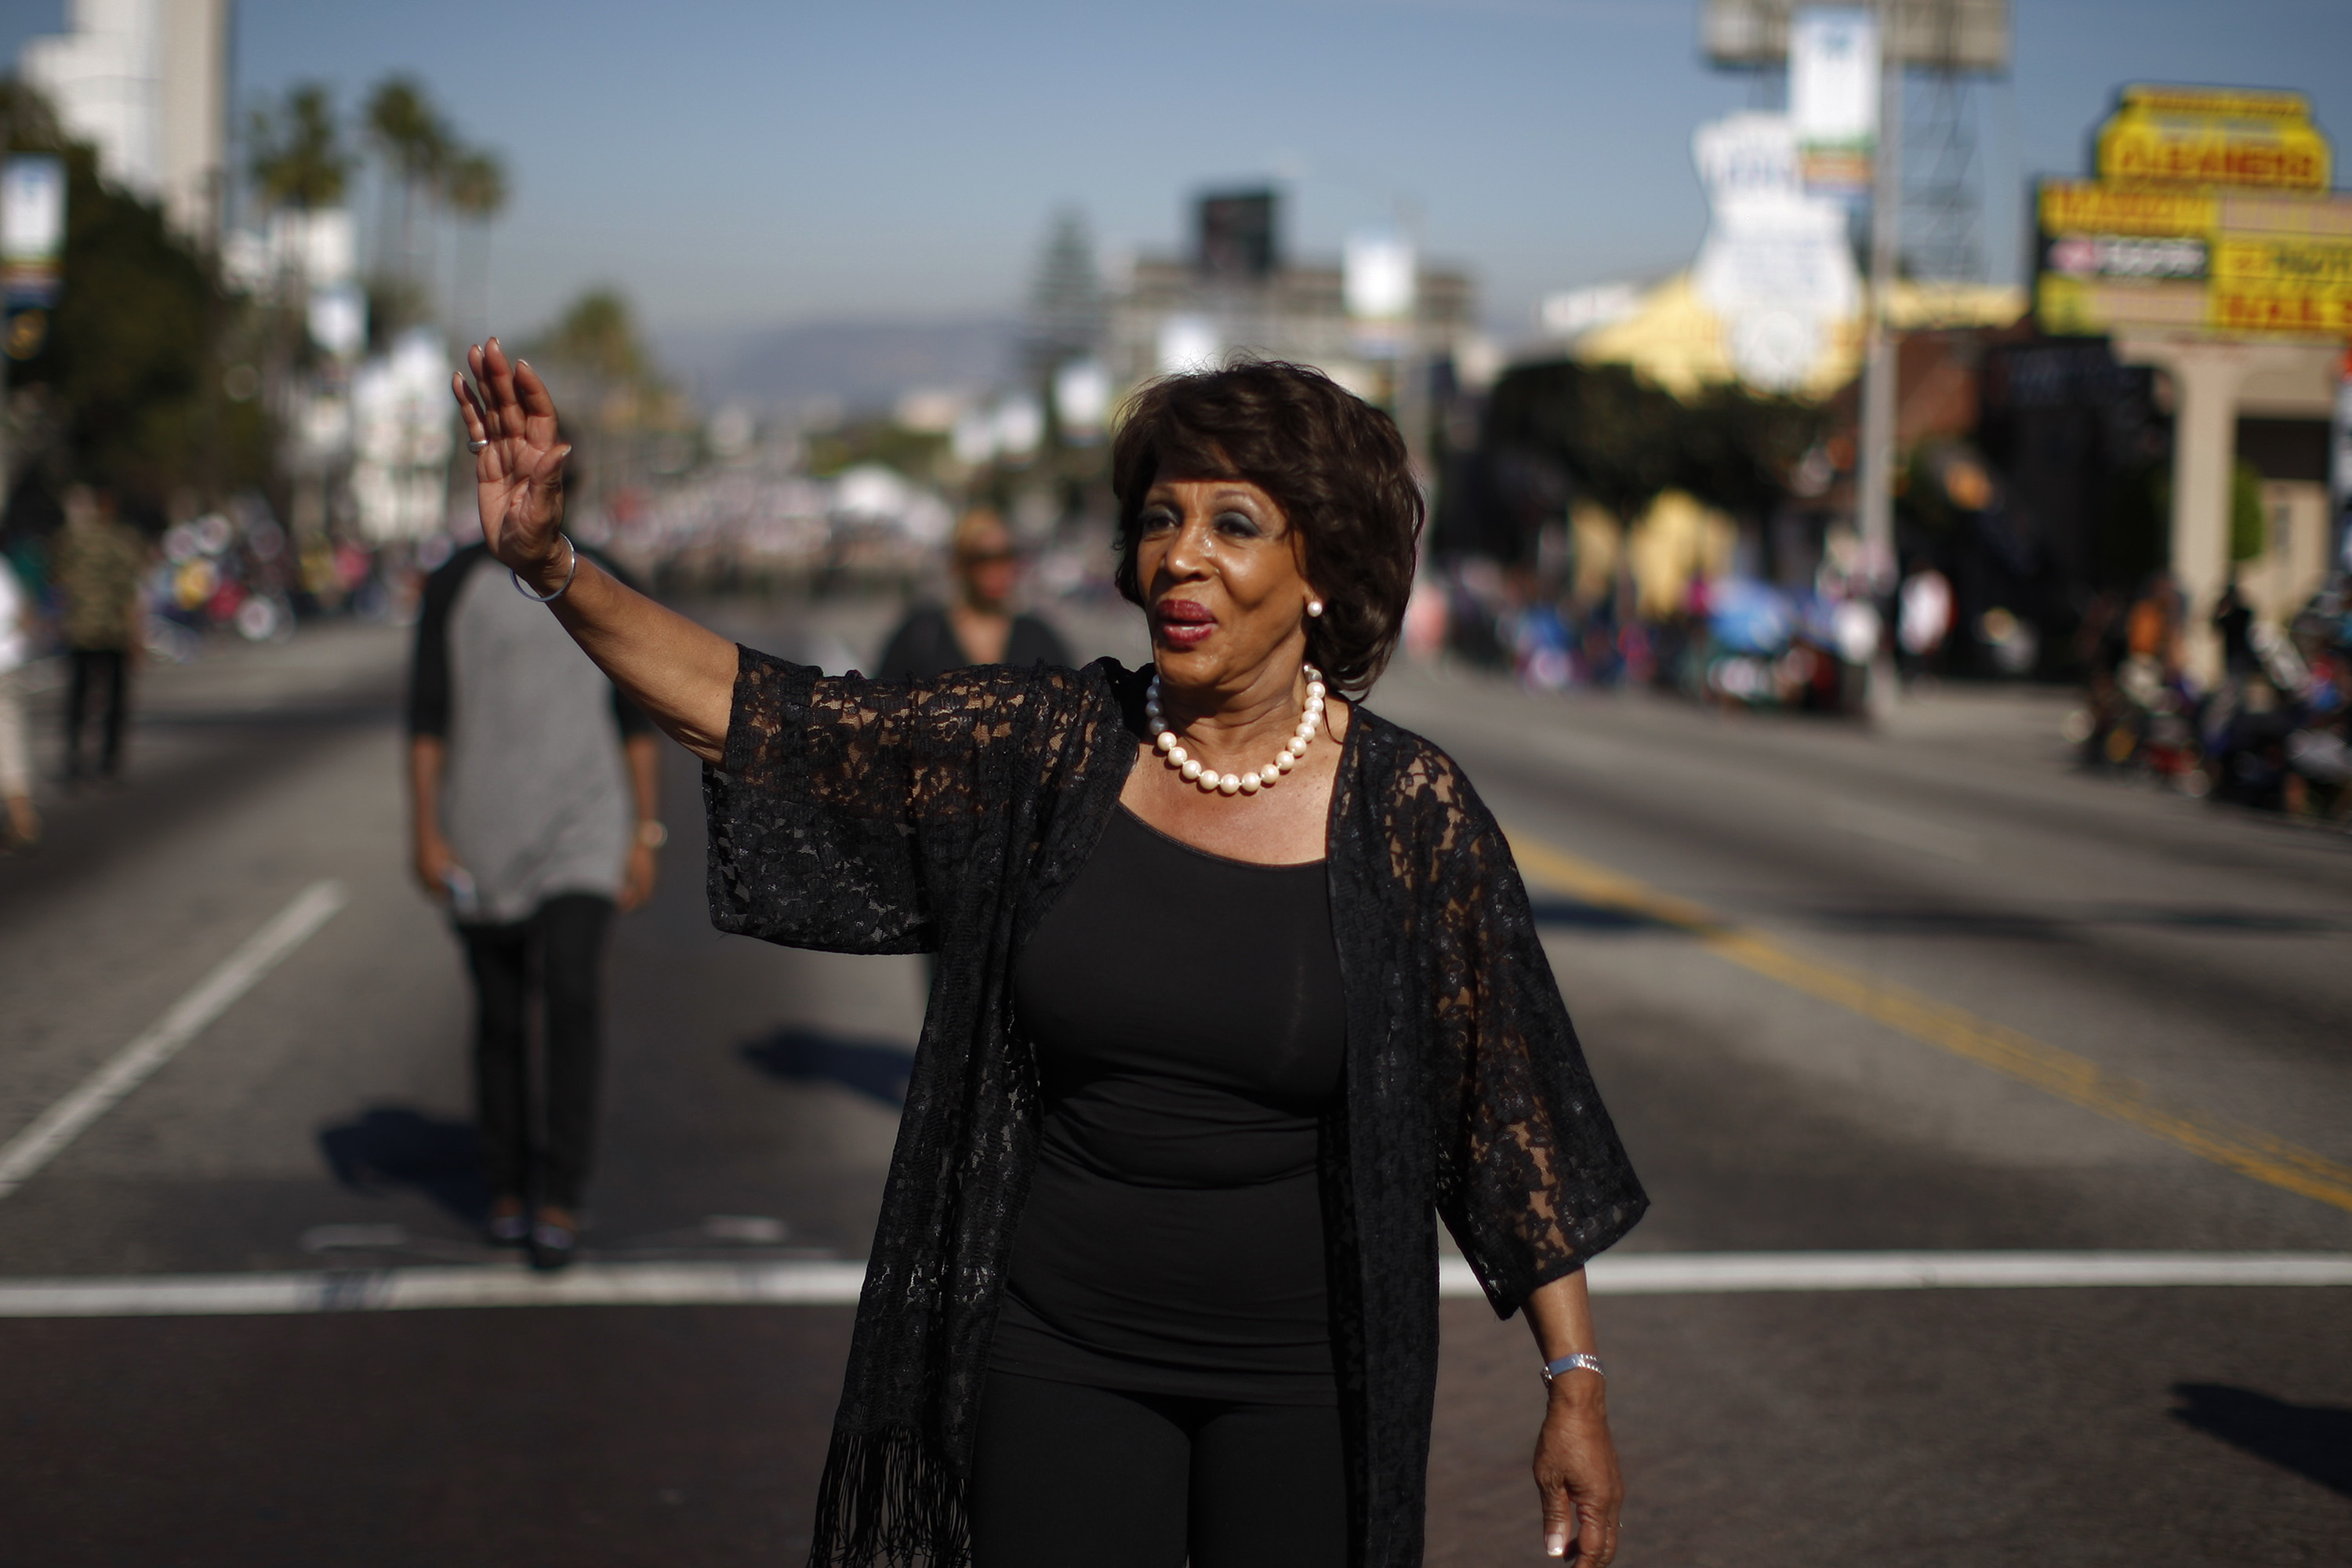 U.S. Rep. Maxine Waters (D-CA) marches in the 29th annual Kingdom Day Parade on January 20, 2014 in Los Angeles, California.